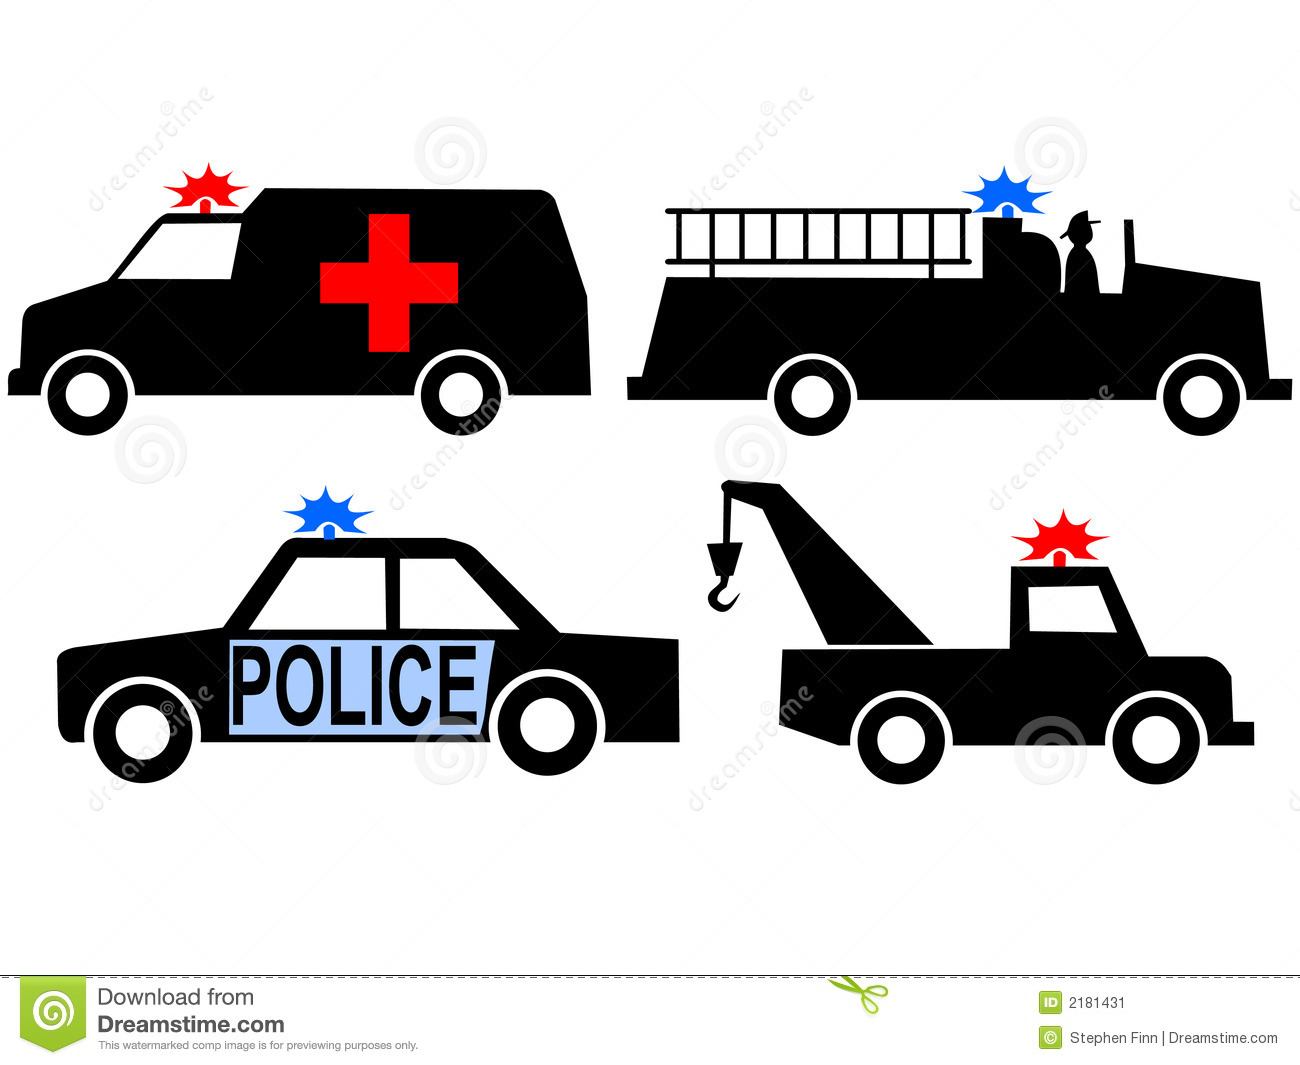 Emergency Vehicles Stock Image - Image: 2181431